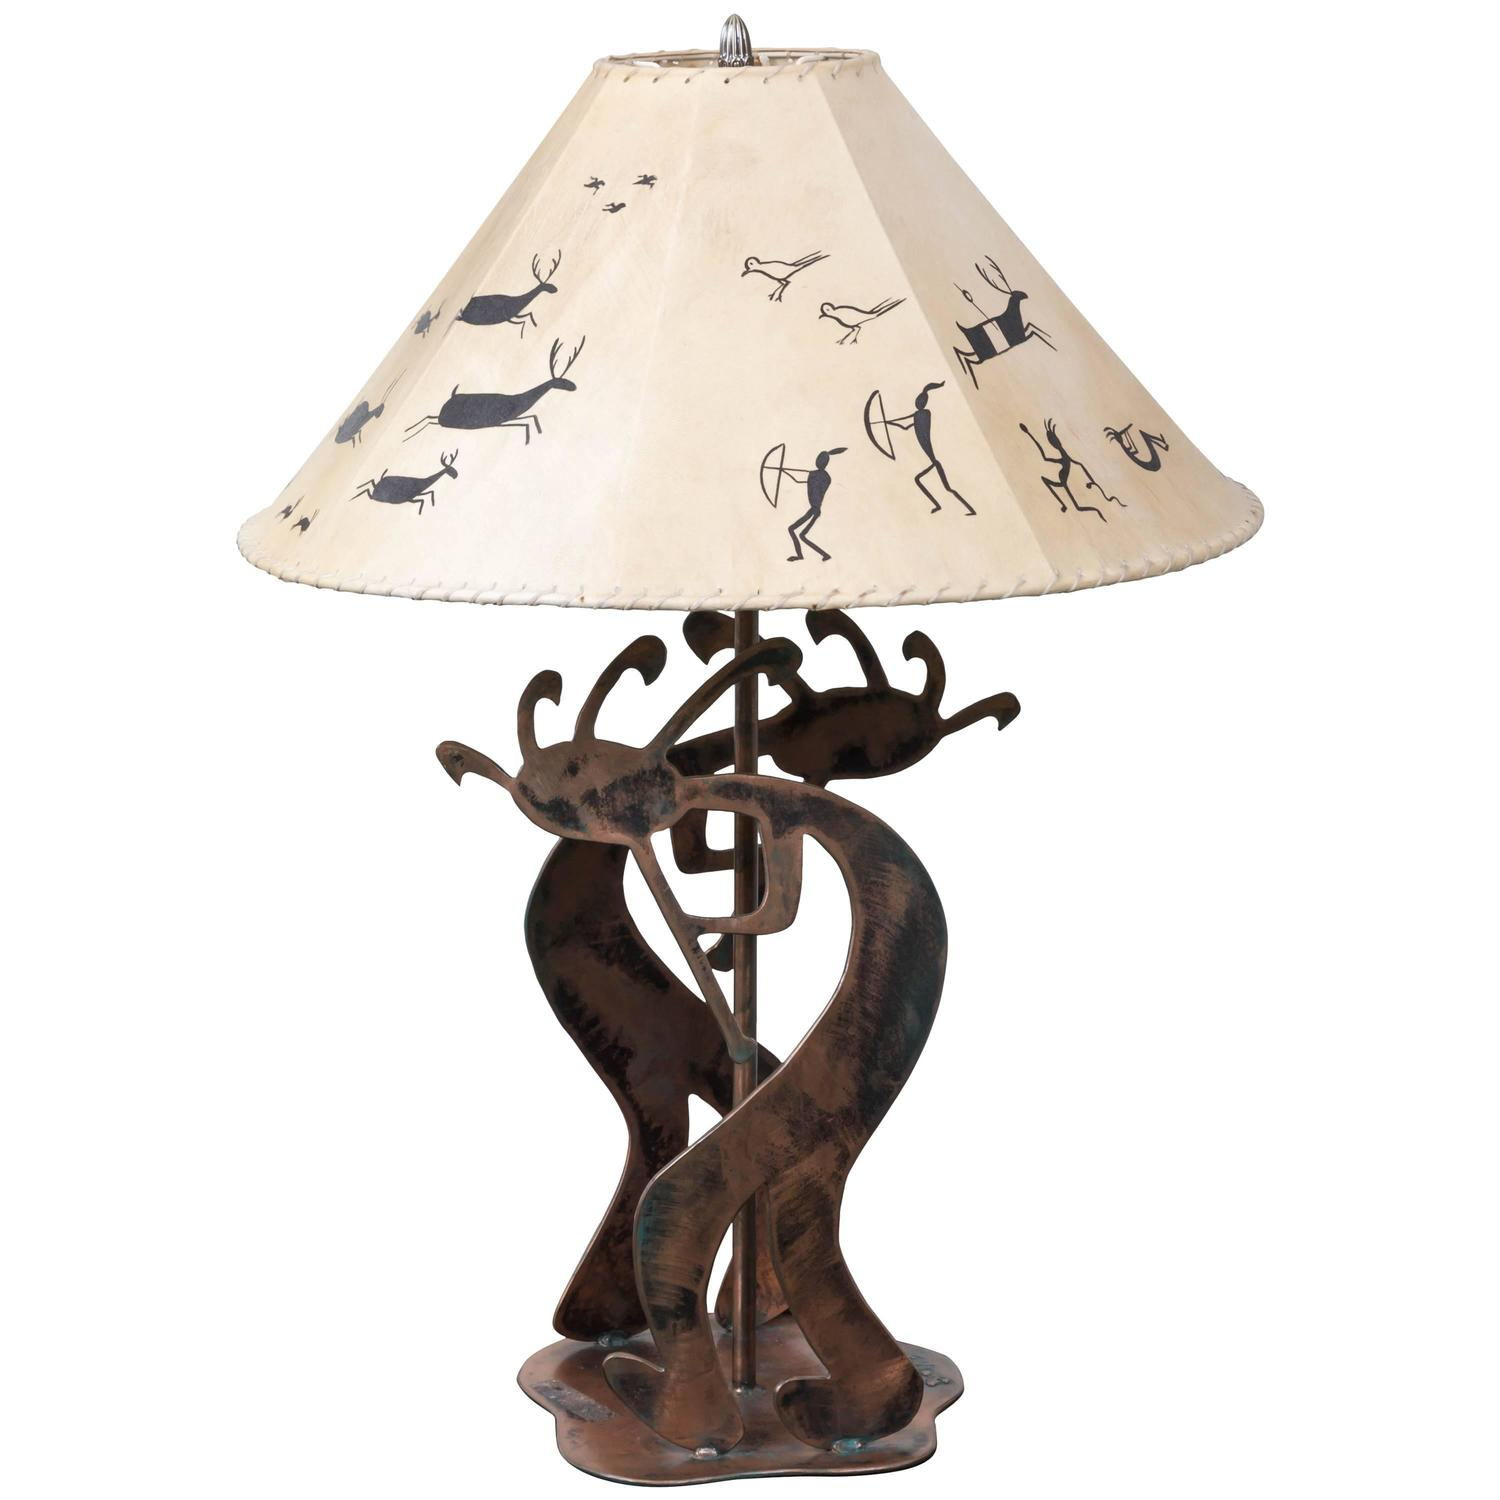 Copper Table Lamp With Stylized Native American Motifs And